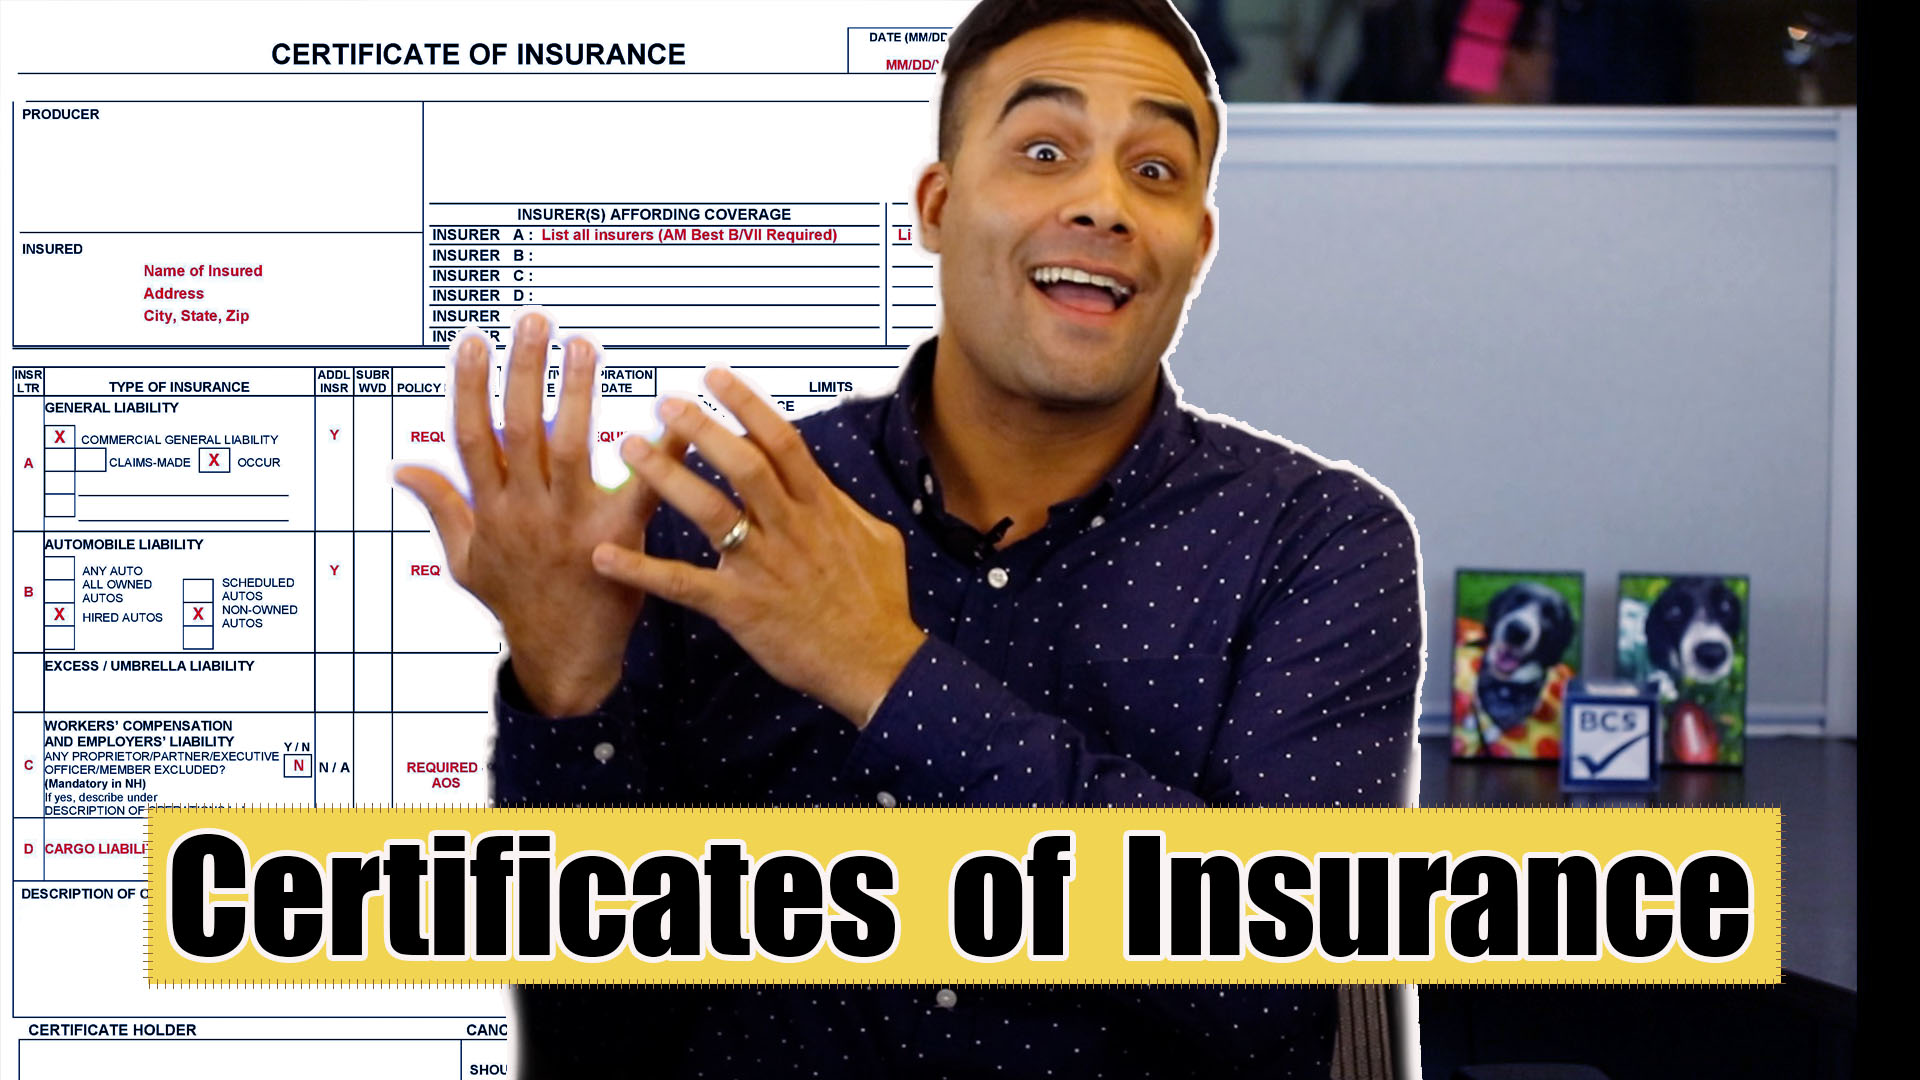 BCSUniversity_Video_CertificateOfInsurance